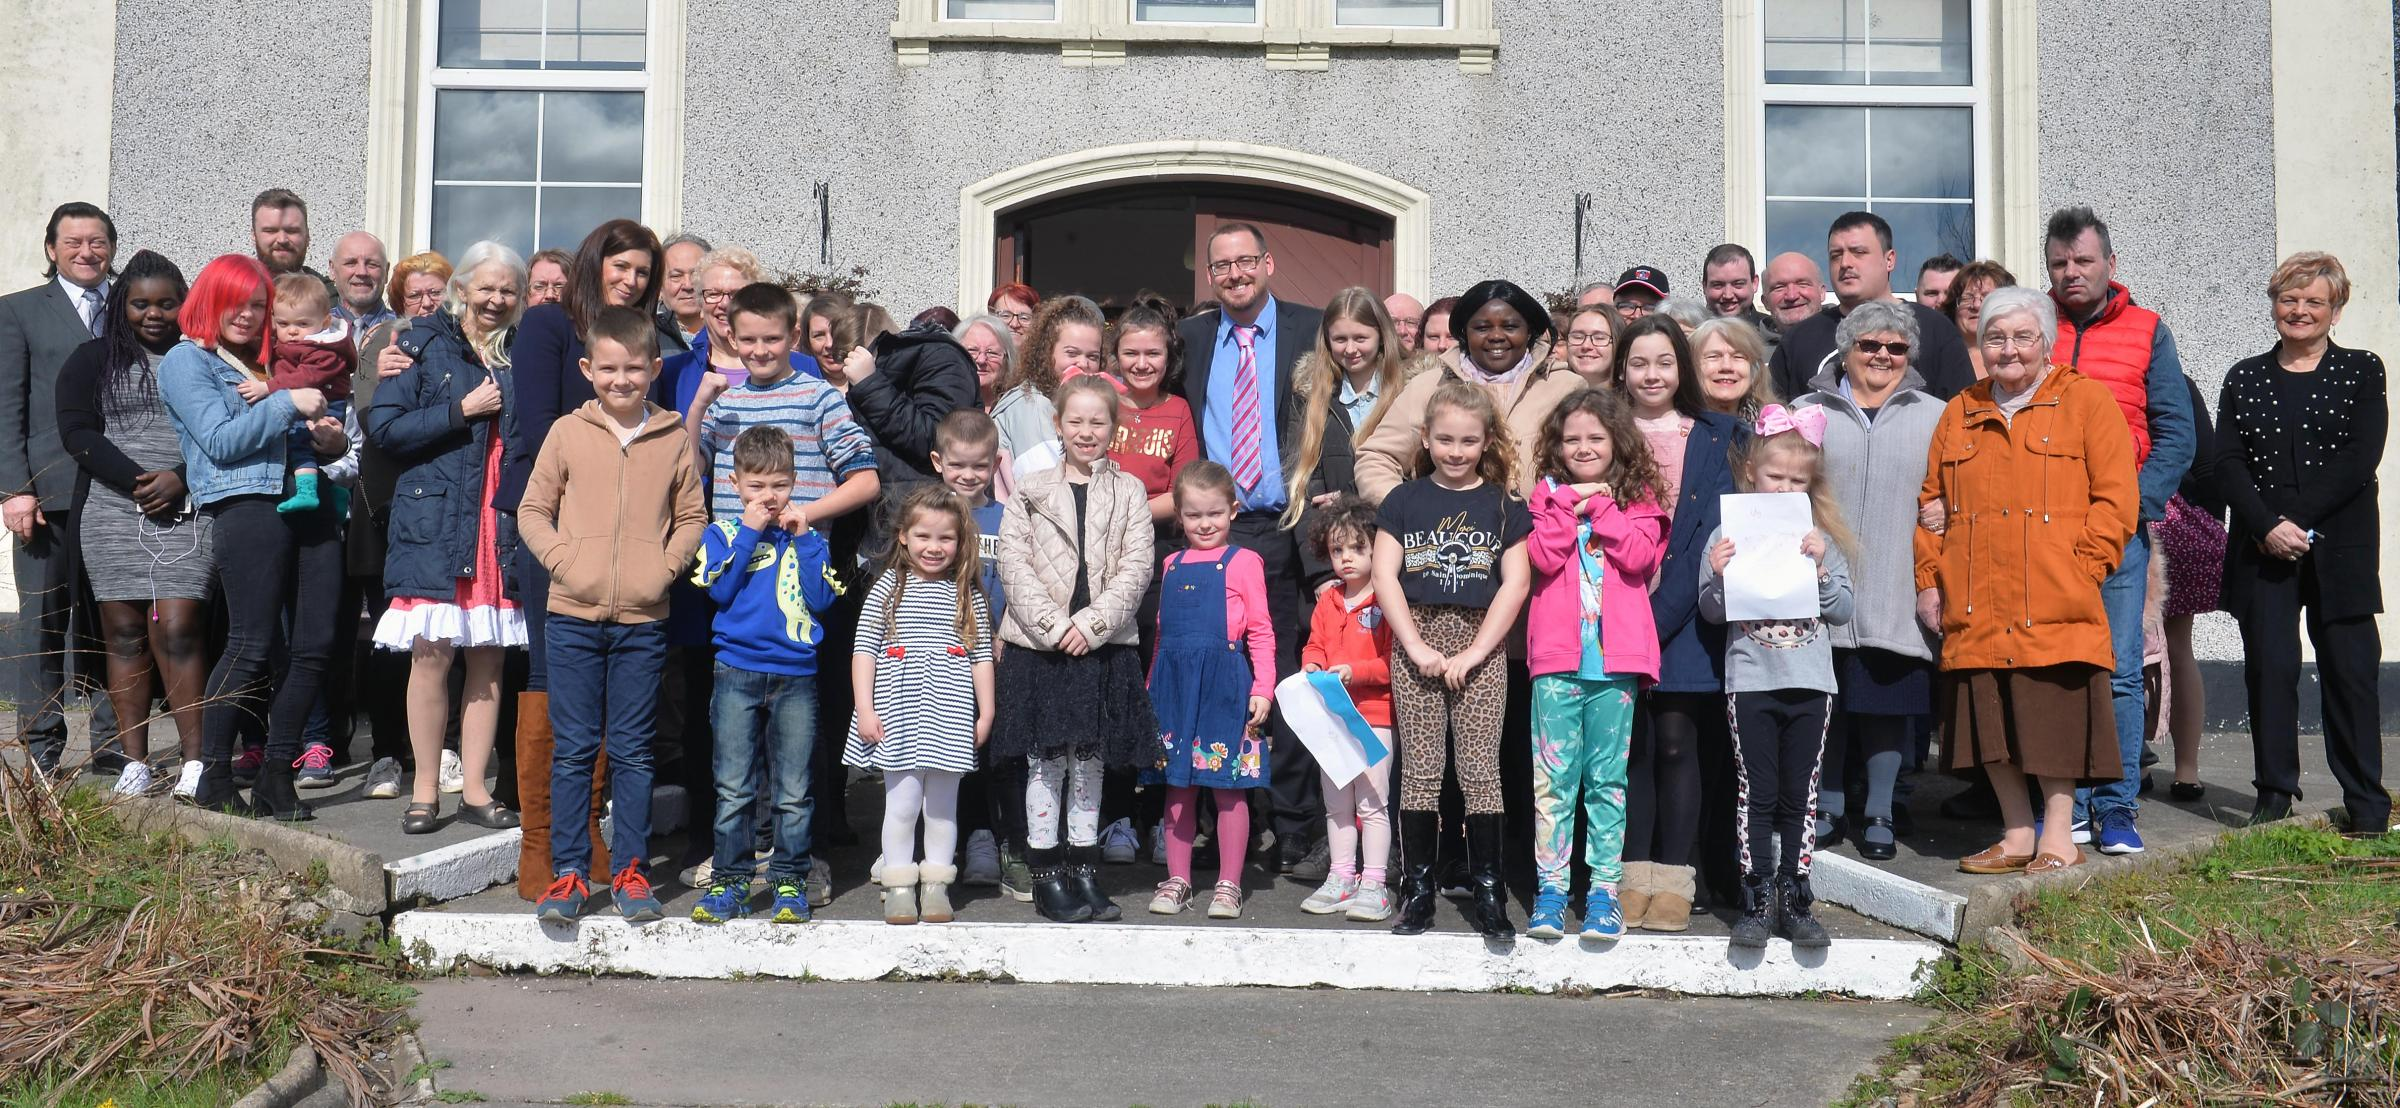 'I wanted to show him how much people love and support him,' says councillor after community raise £1,000 for pastor after burglary